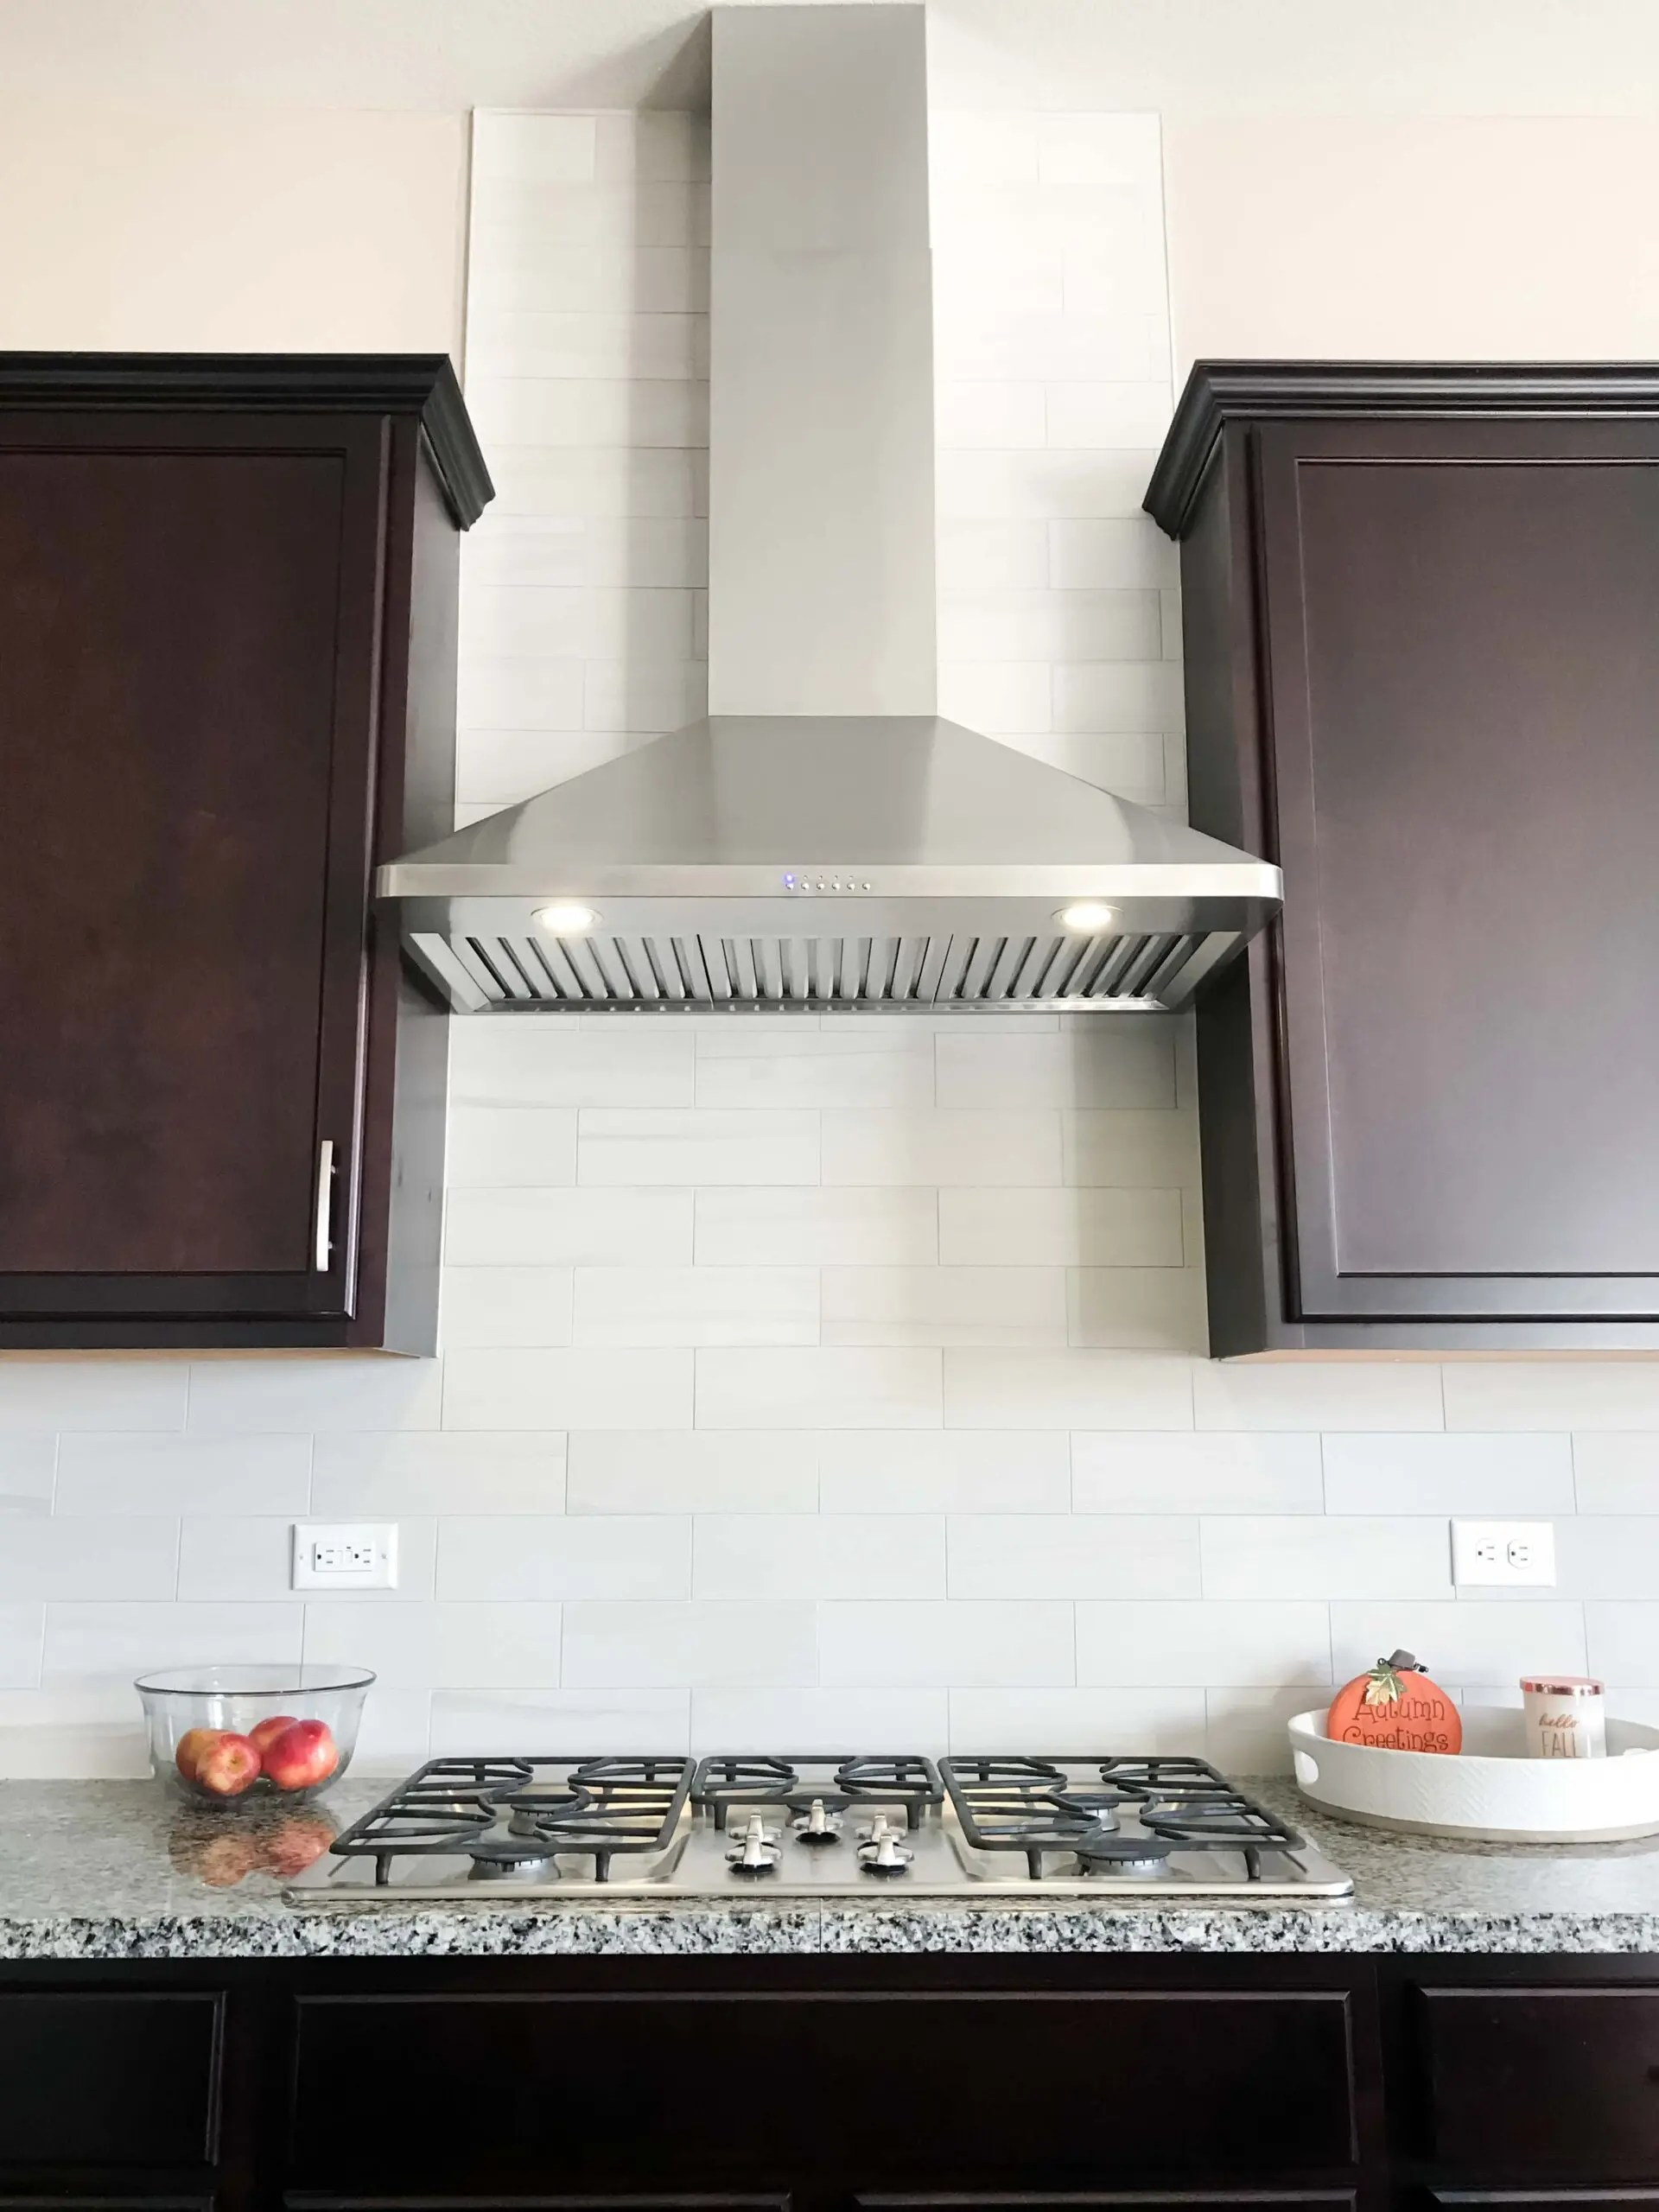 Clean Your Range Hood Blower In 10 Minutes Or Less Proline Blog